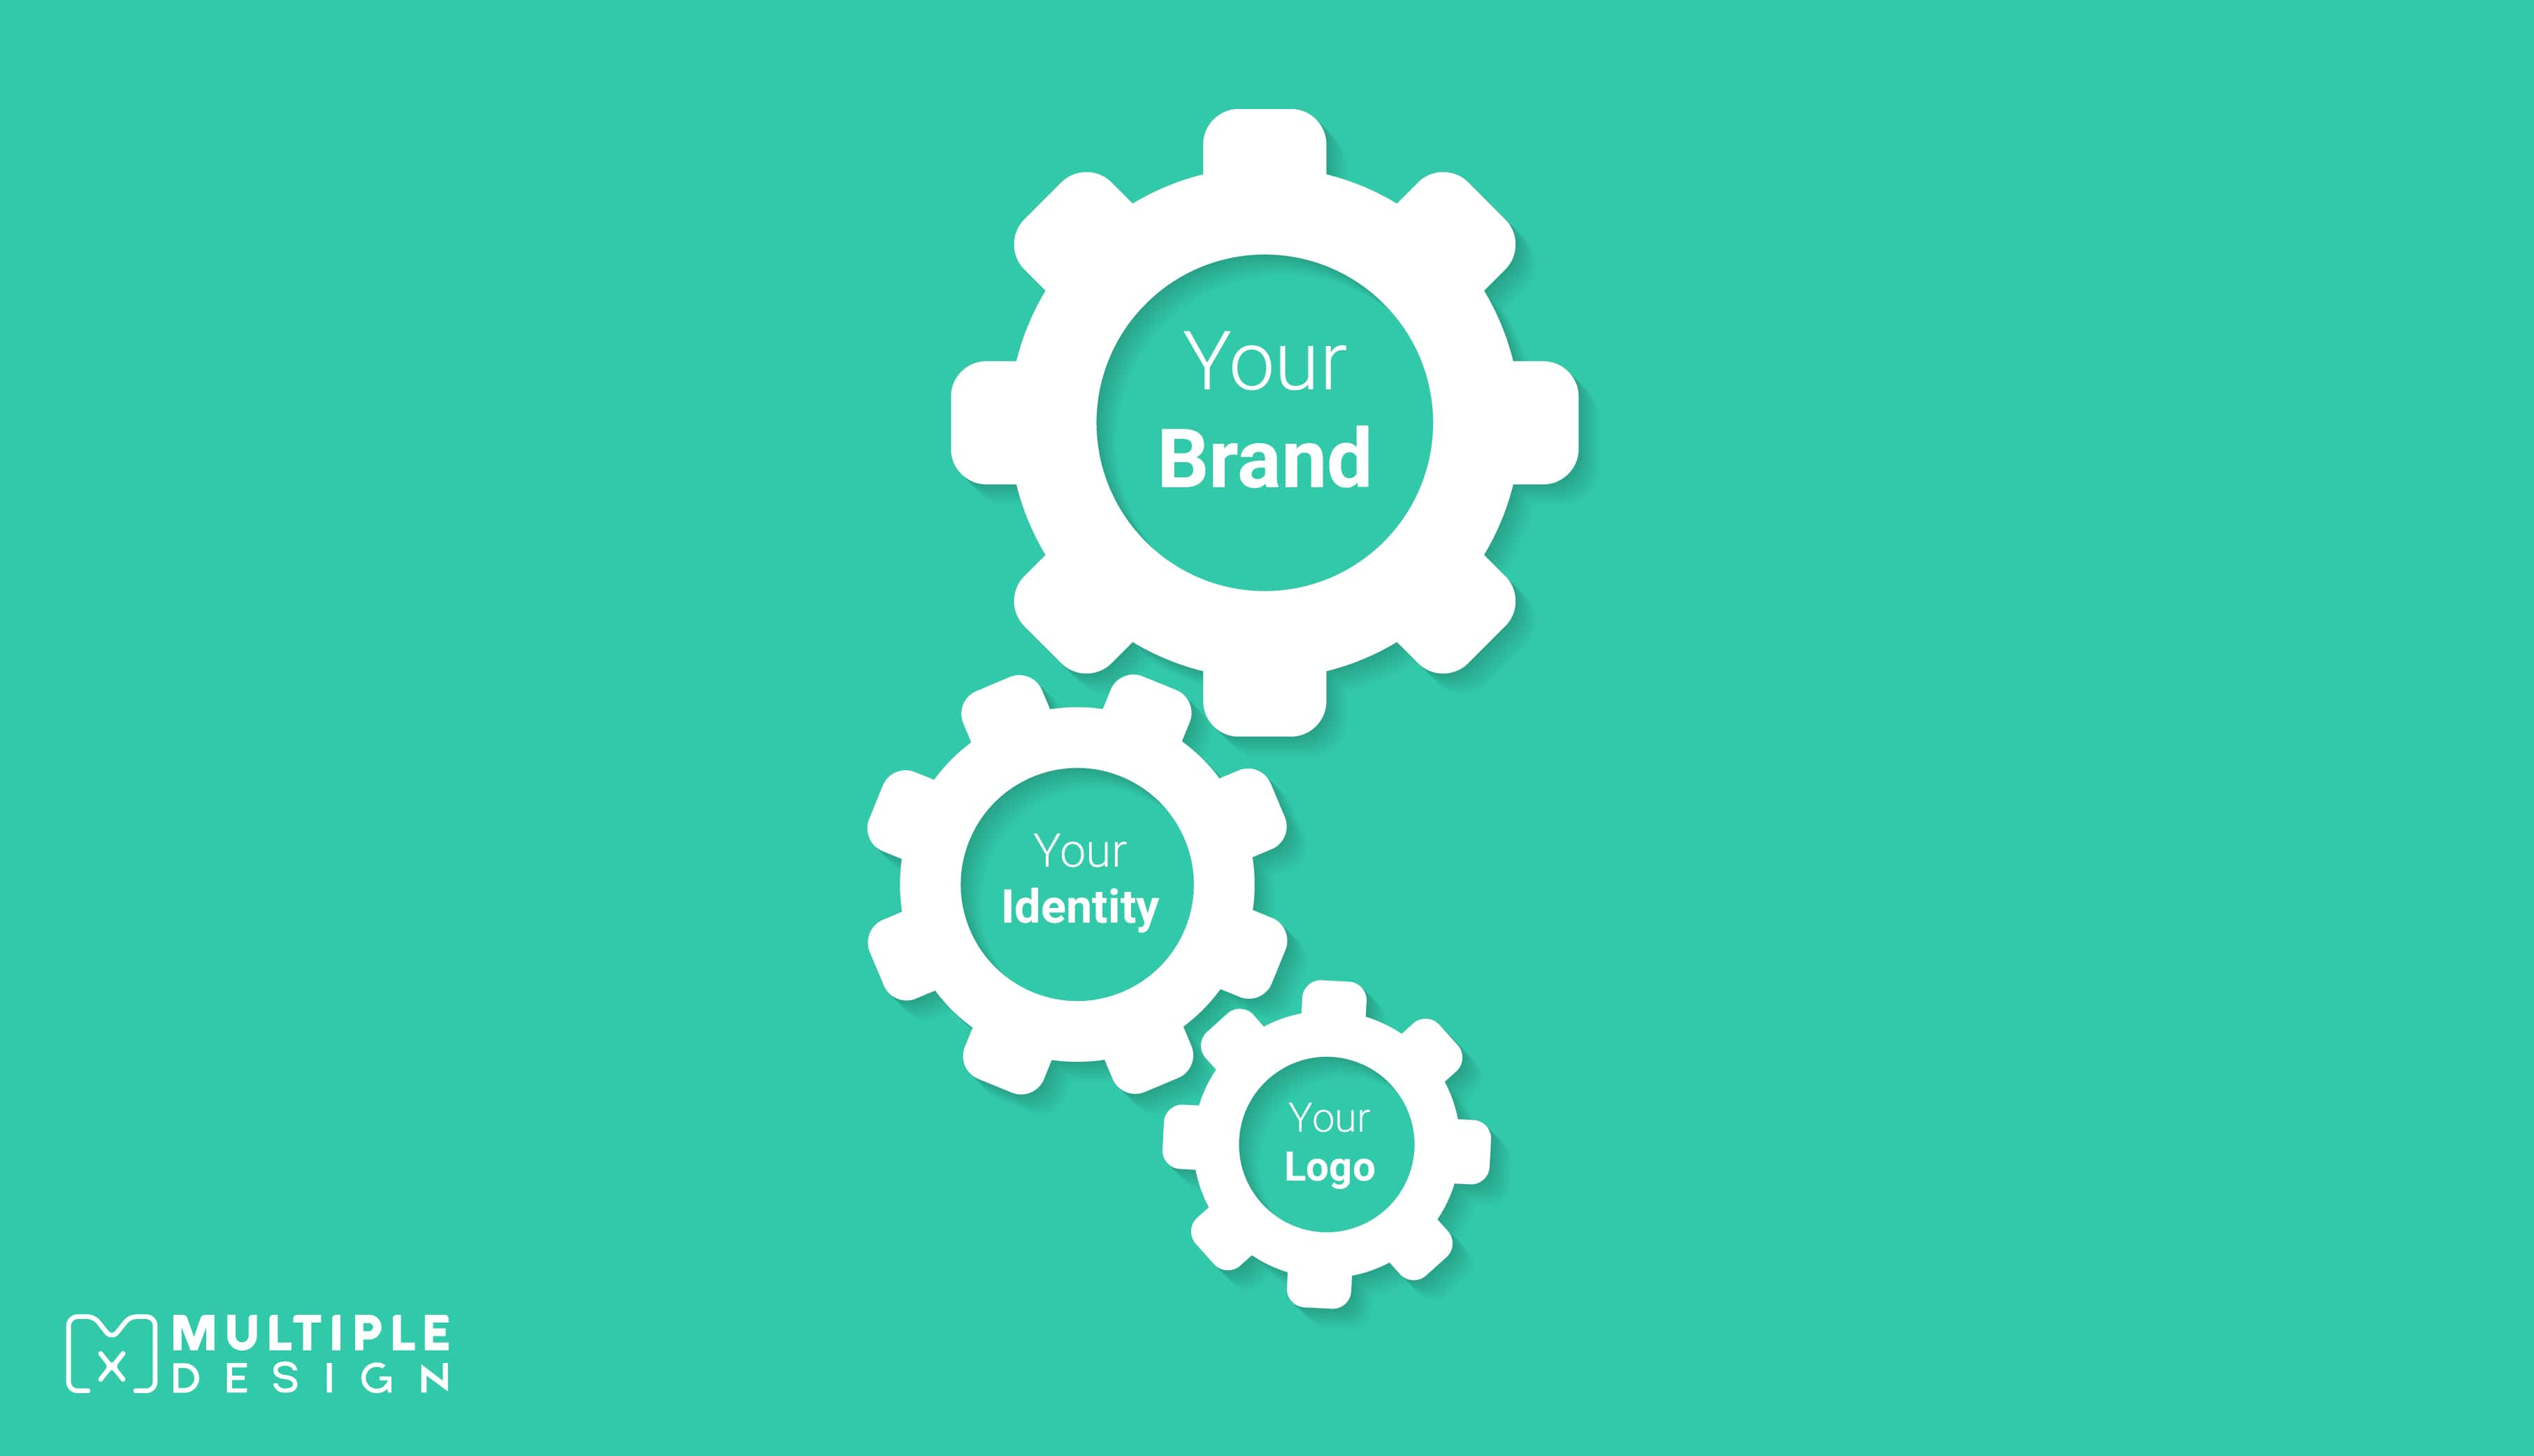 Your Brand, Your Identity, Your Logo